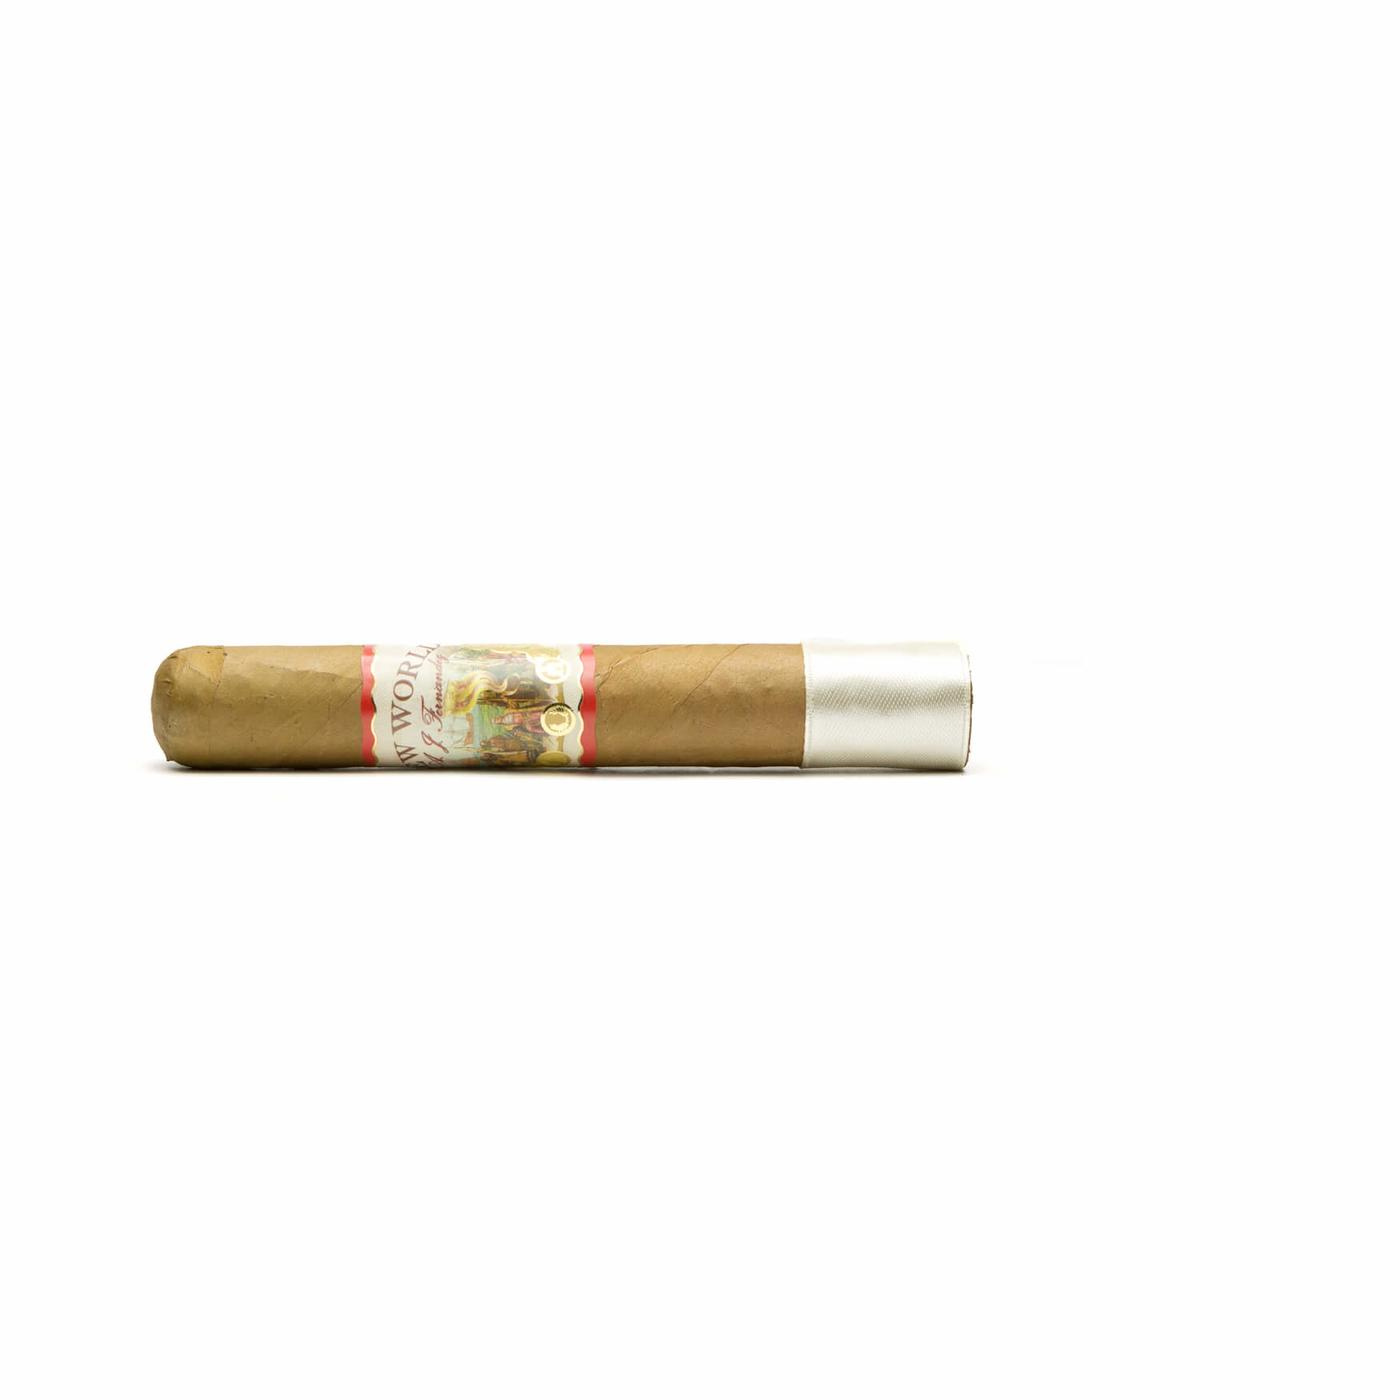 AJ Fernandez New World Connecticut Robusto